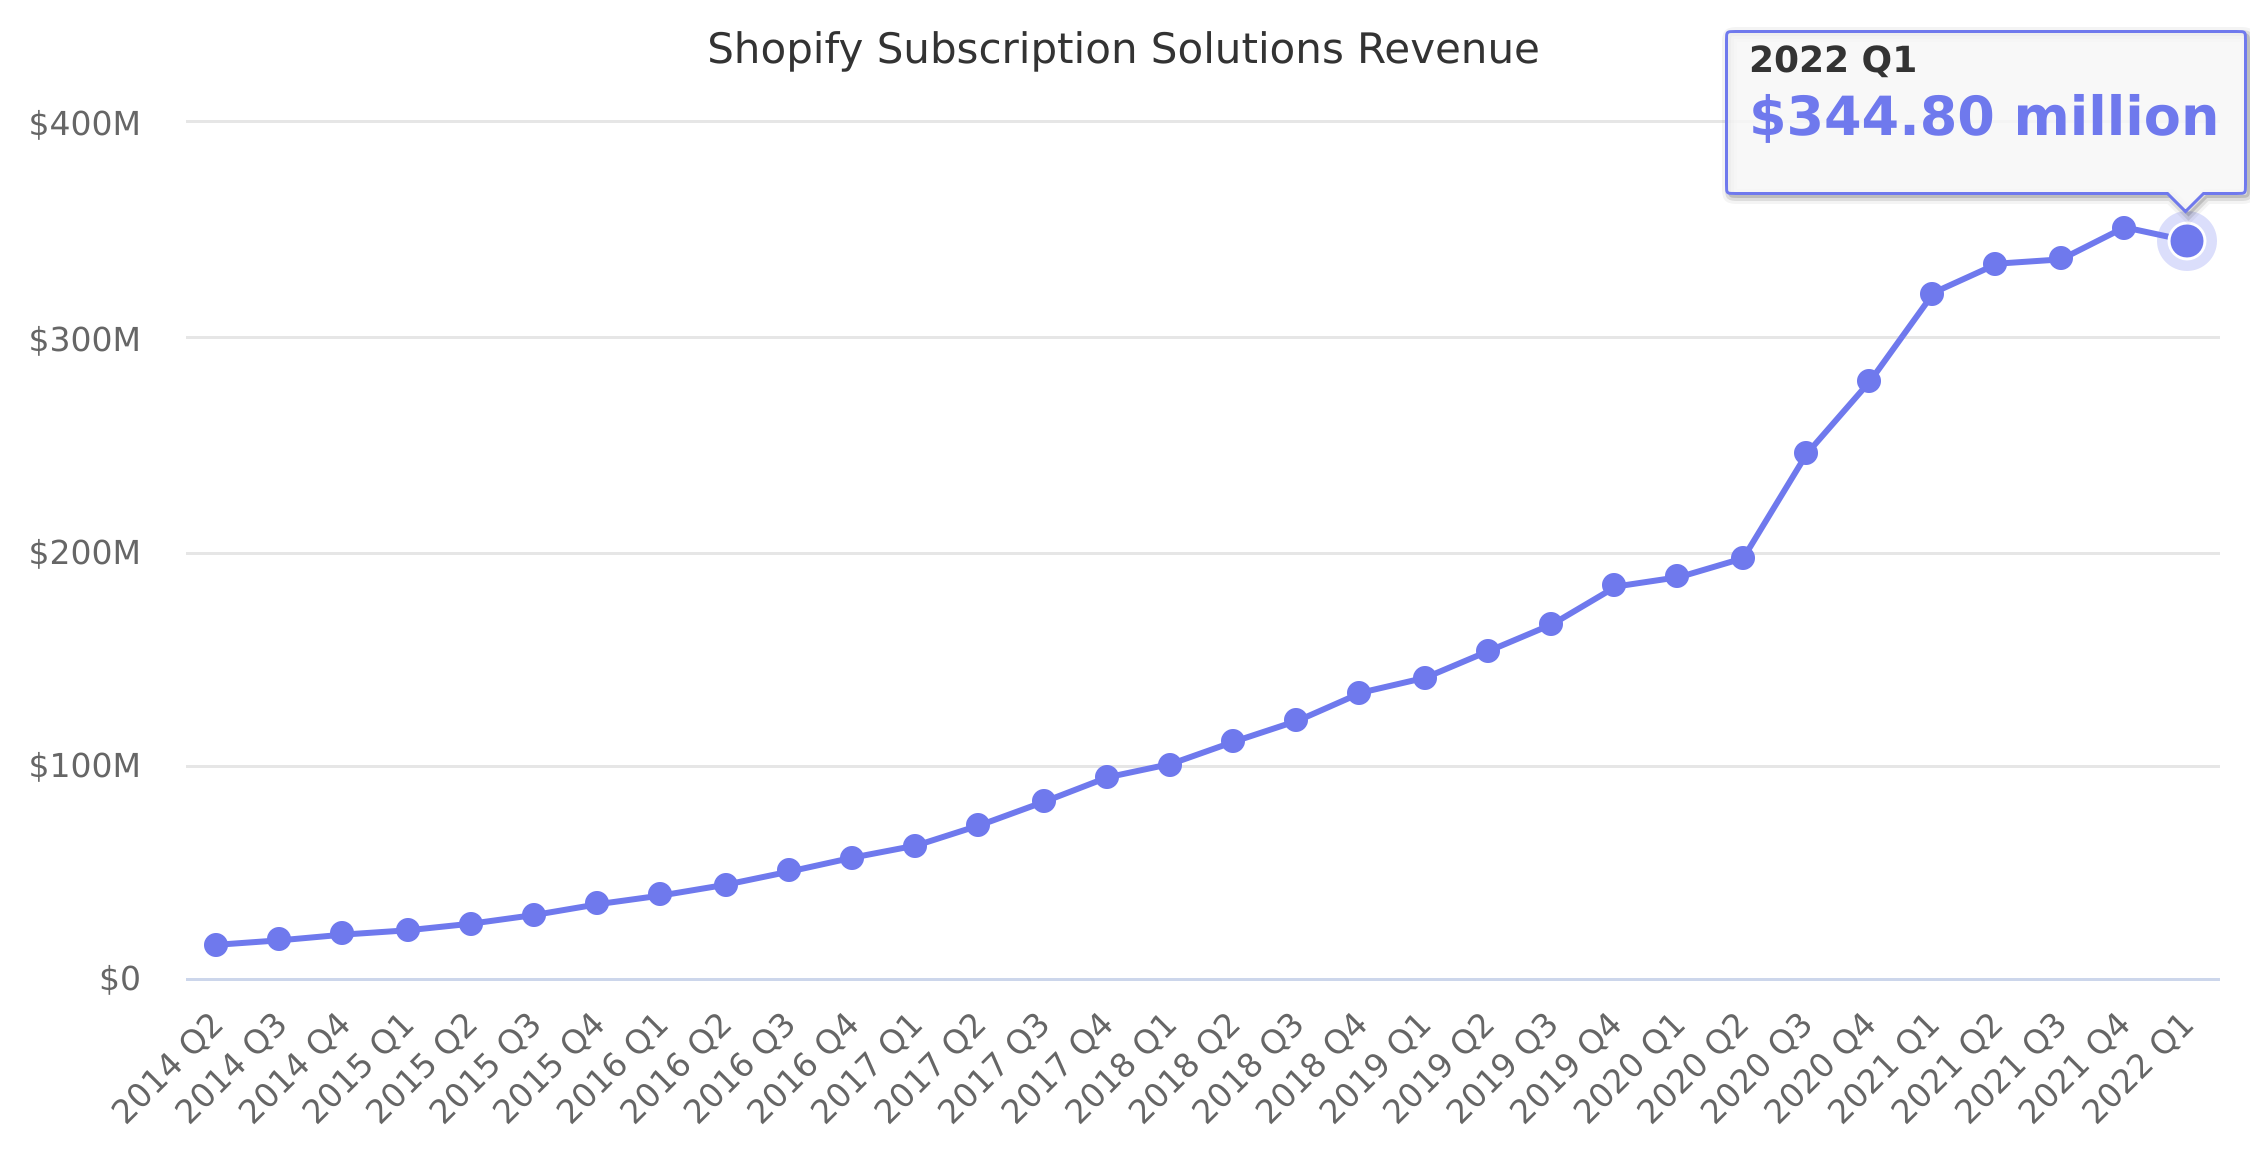 Shopify Subscription Solutions Revenue 2014-2019